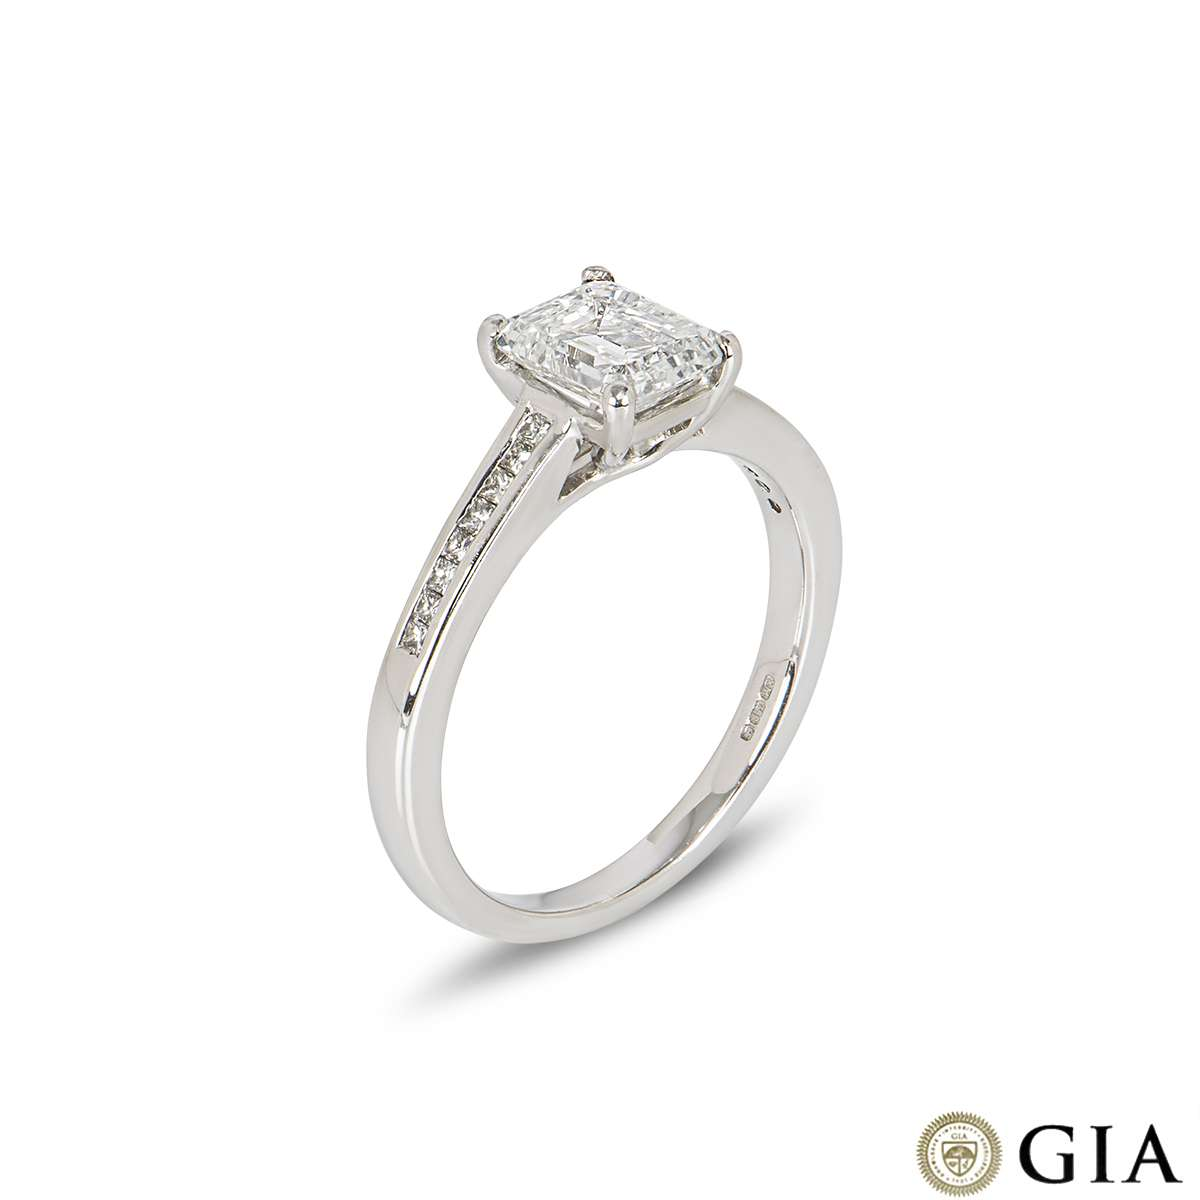 White Gold Emerald Cut Diamond Ring 1.12ct F/VVS2